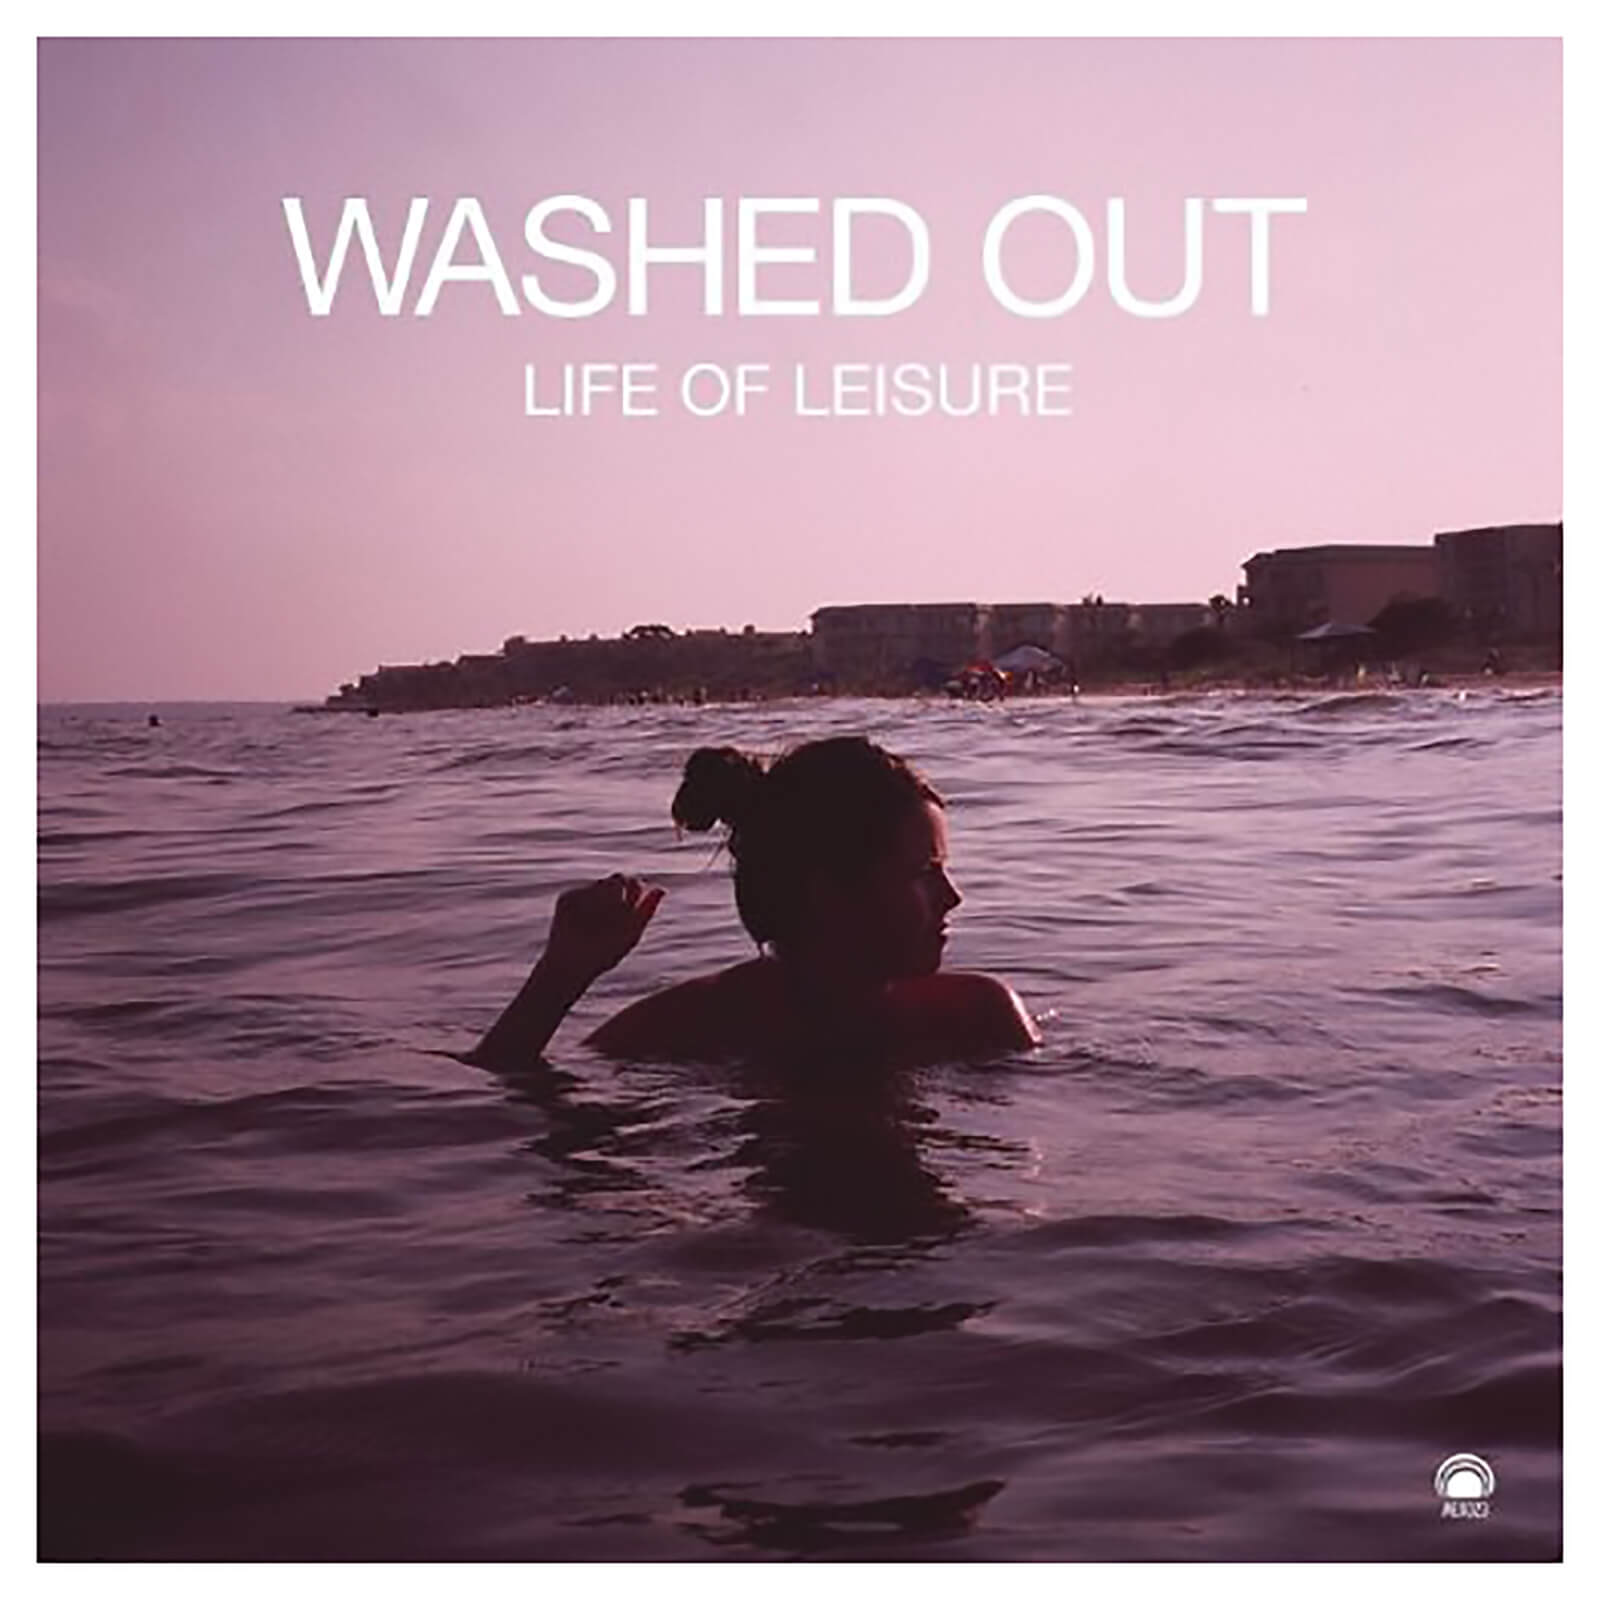 Washed Out - Life Of Leisure - Vinyl